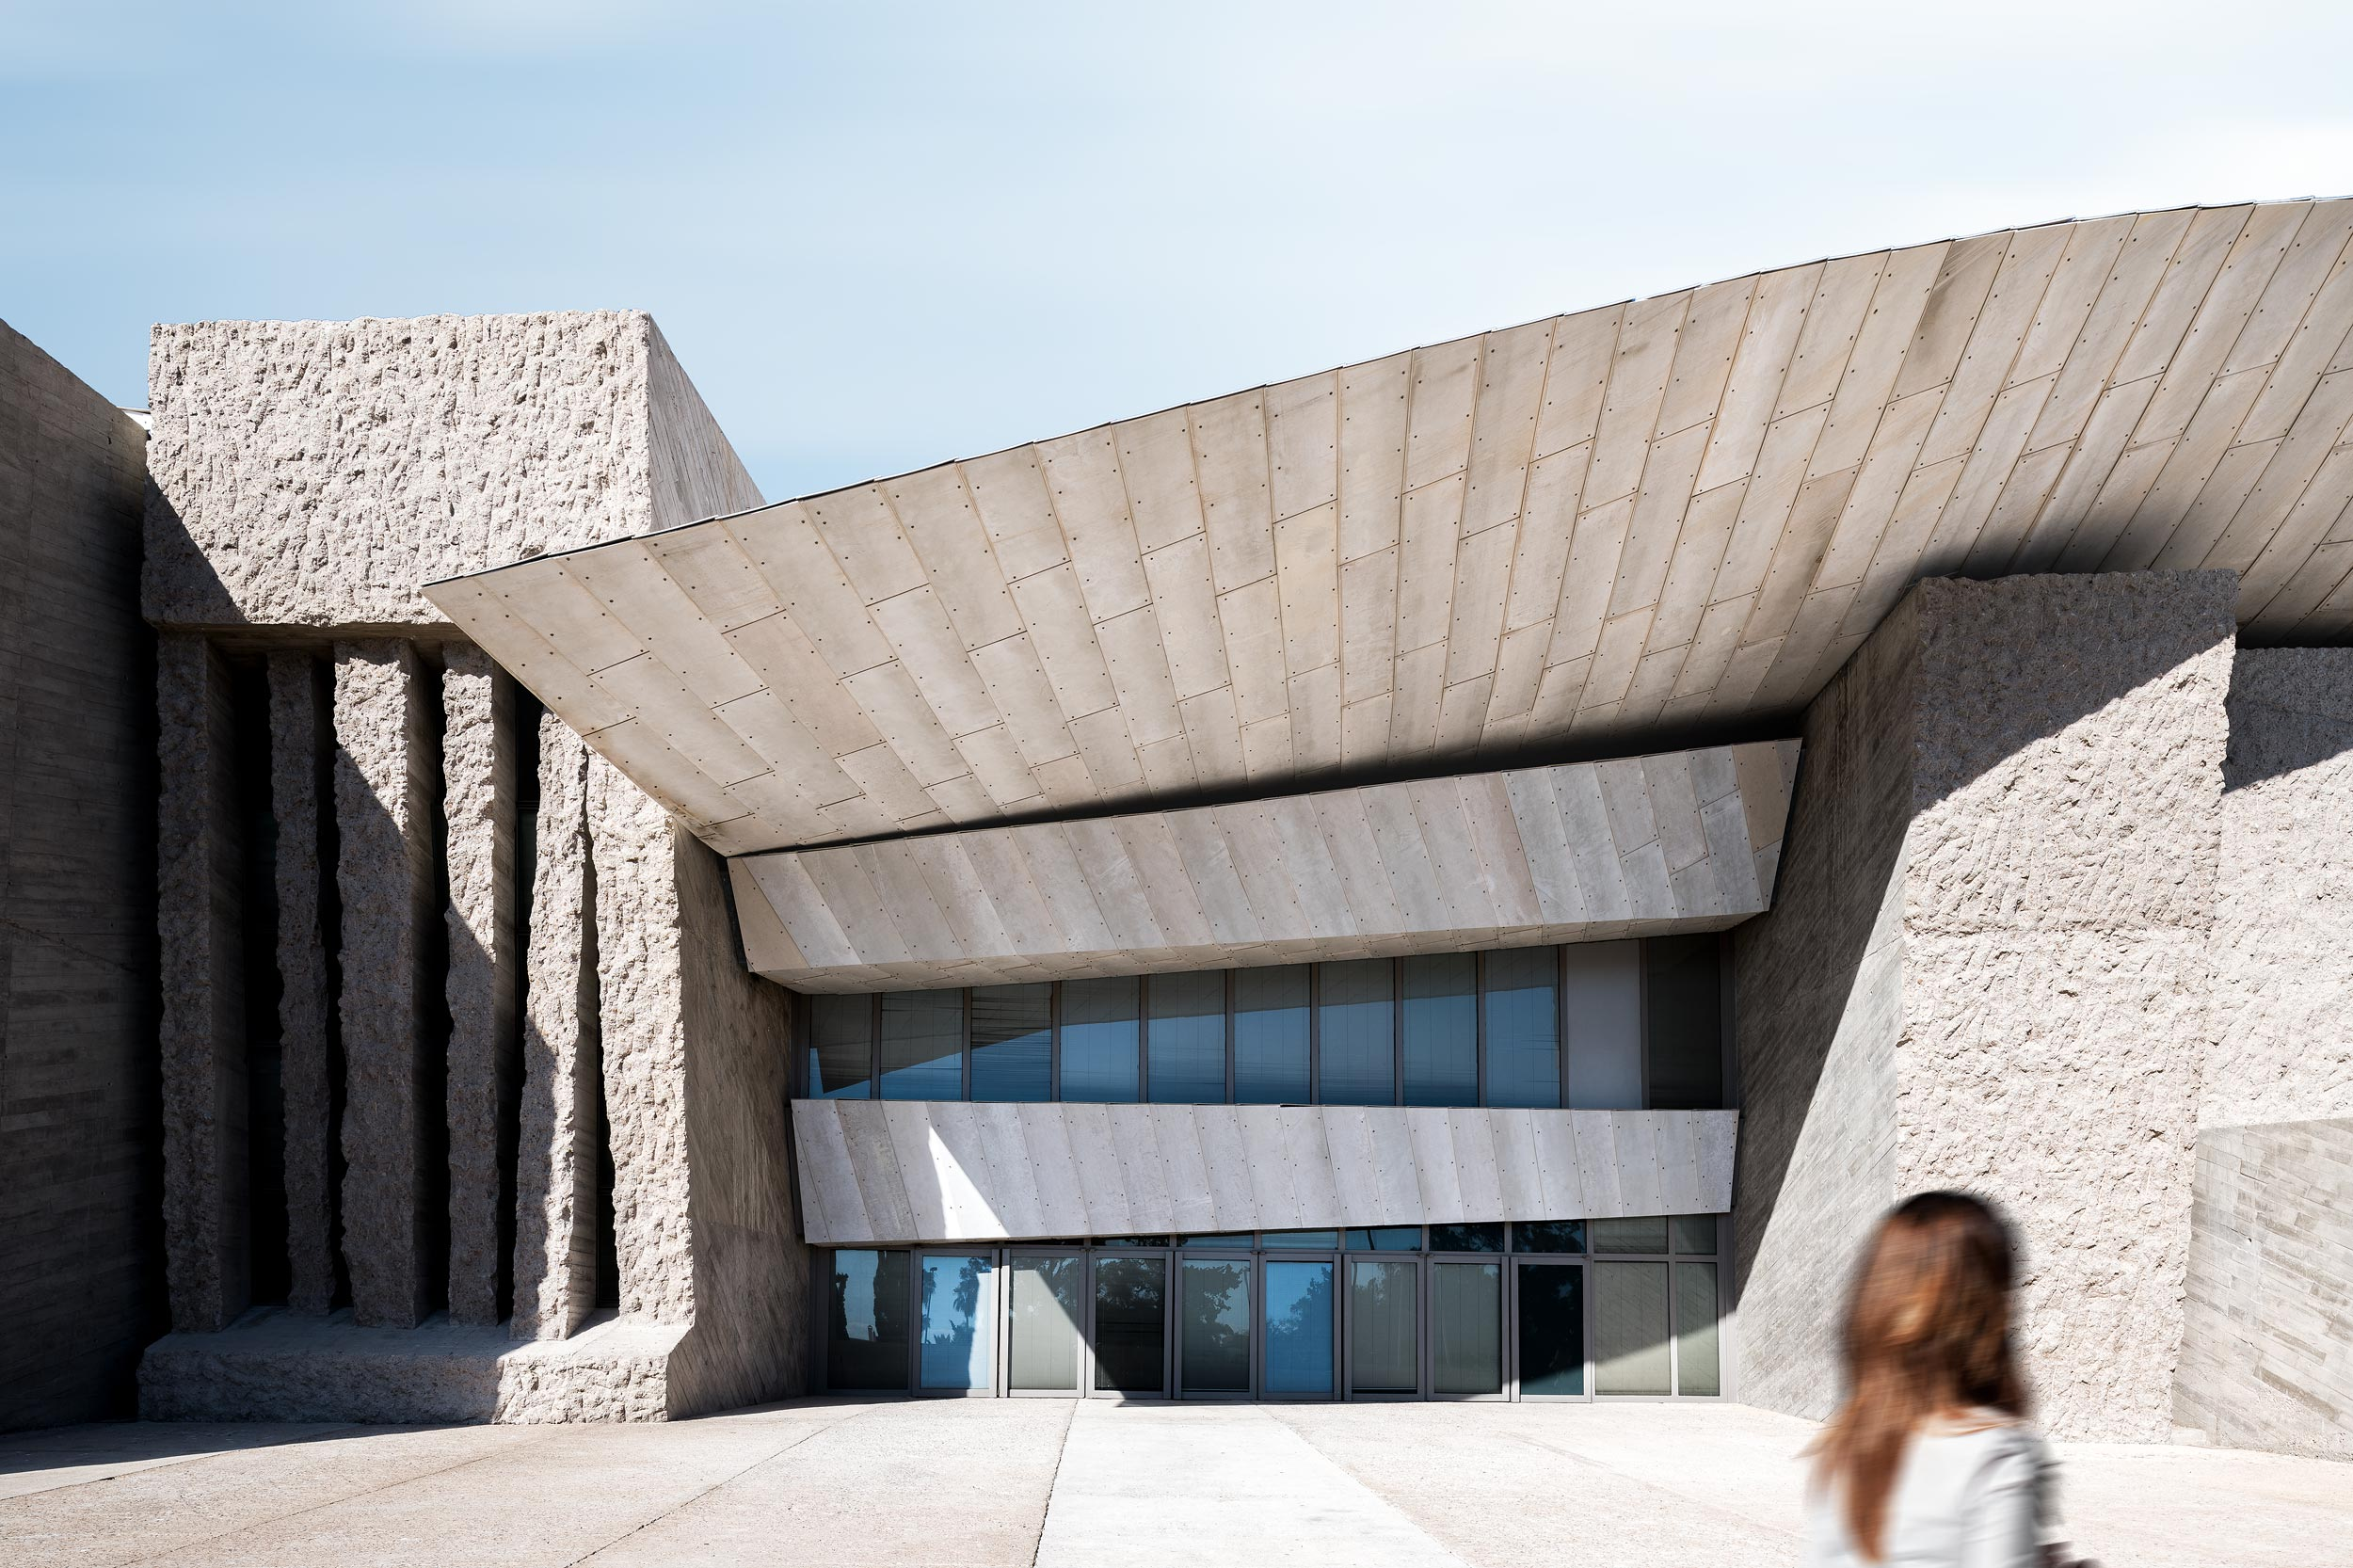 Magma Art & Congress Centre - Tenerife, Spanje - Architectuurfotograaf Chiel de Nooyer